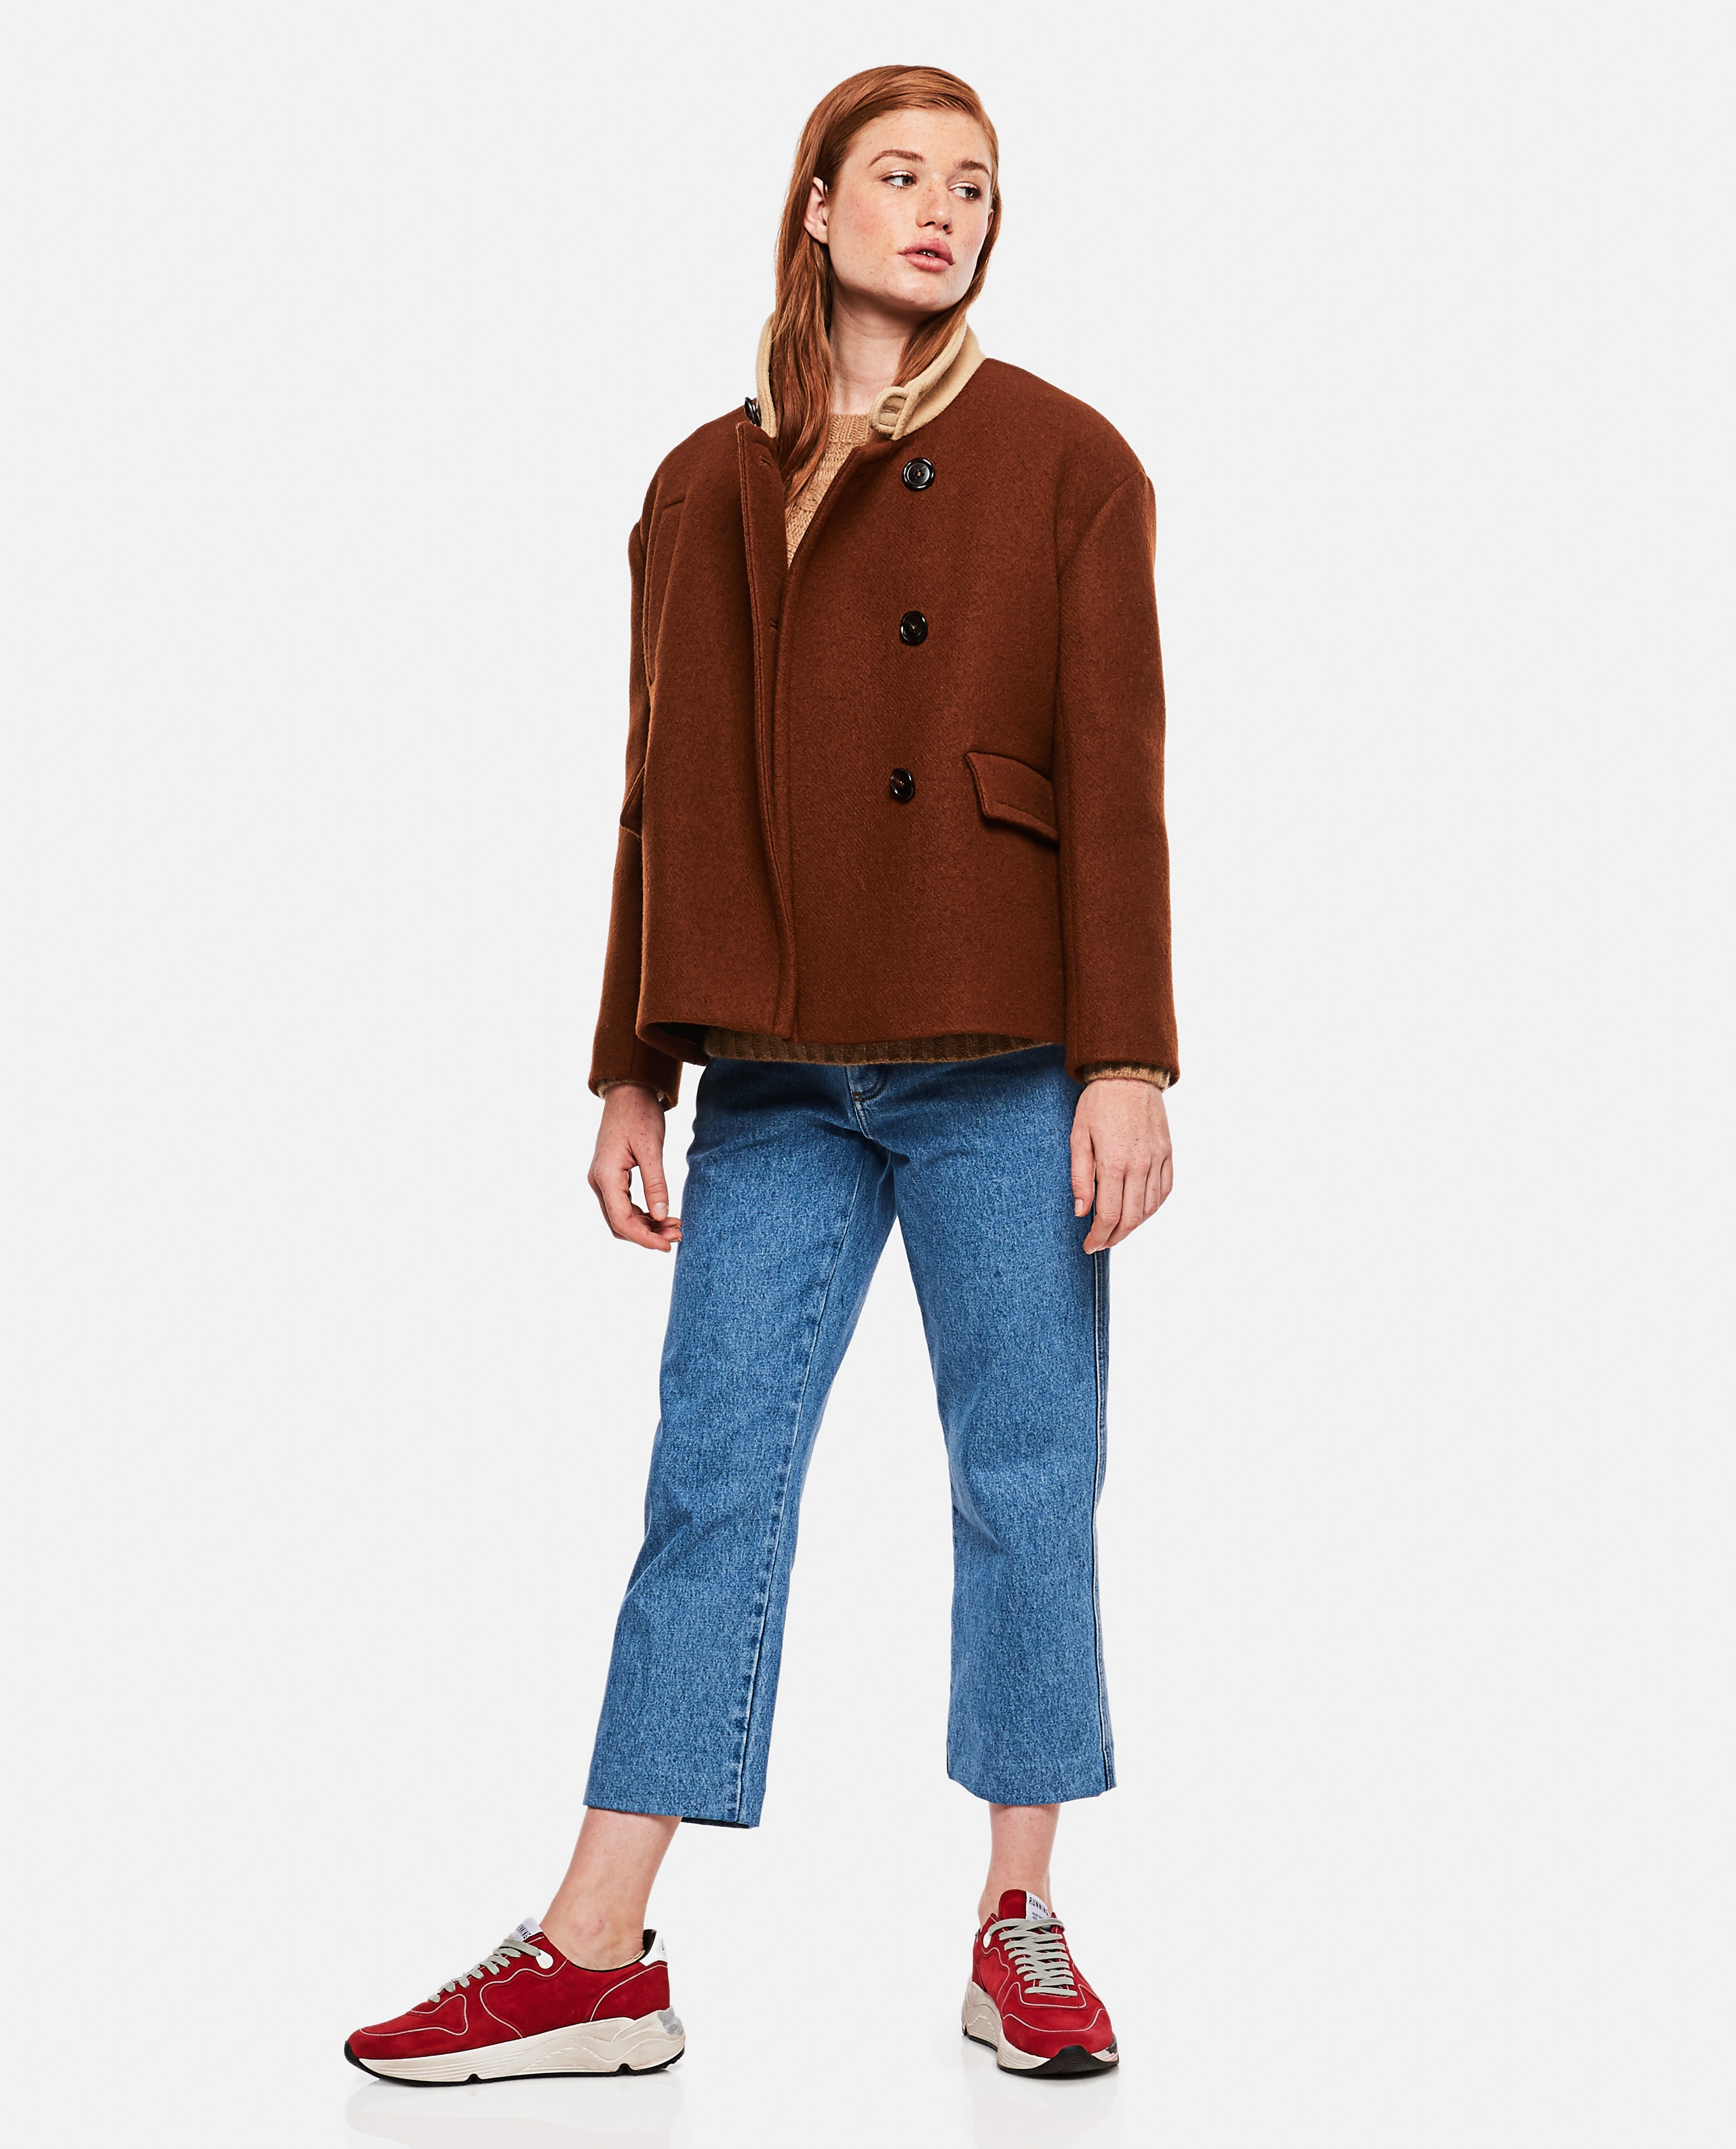 Wool Jacket Women Marni 000180950026919 4